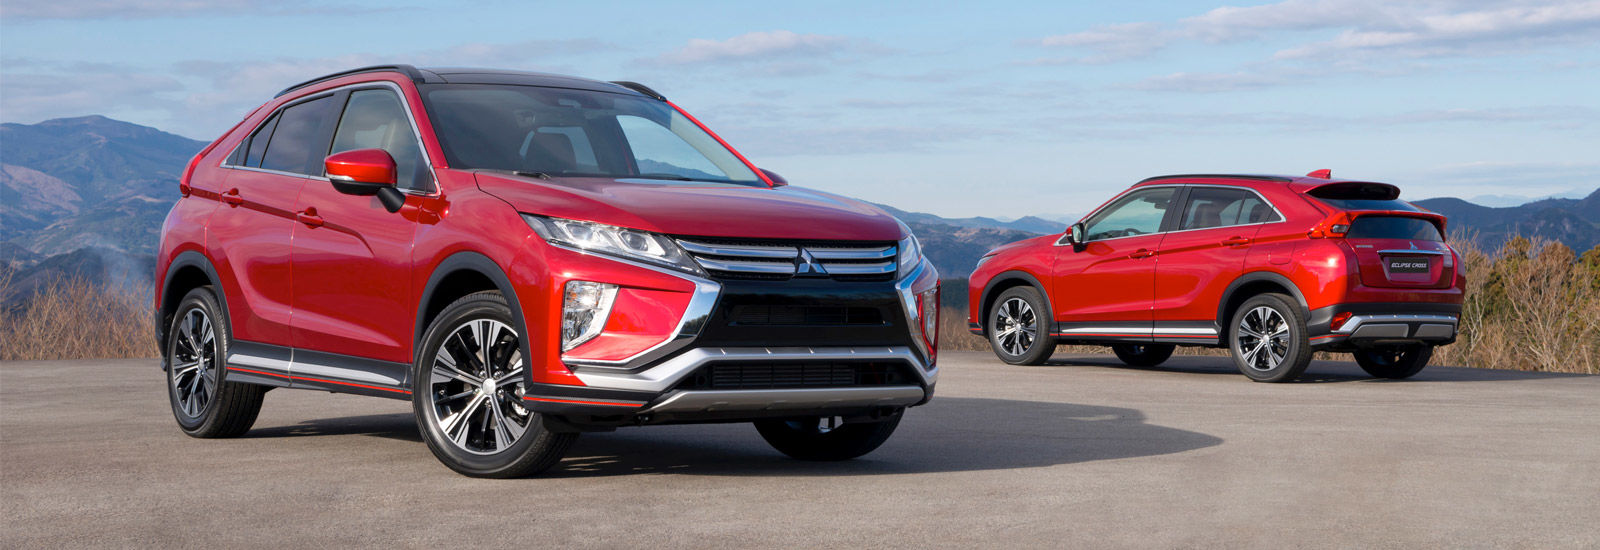 2018 mitsubishi rvr specs. exellent rvr the new eclipse cross shares a broad black grille with the current  outlander but benefits from set of large foglights and thick chrome trim pieces to  and 2018 mitsubishi rvr specs